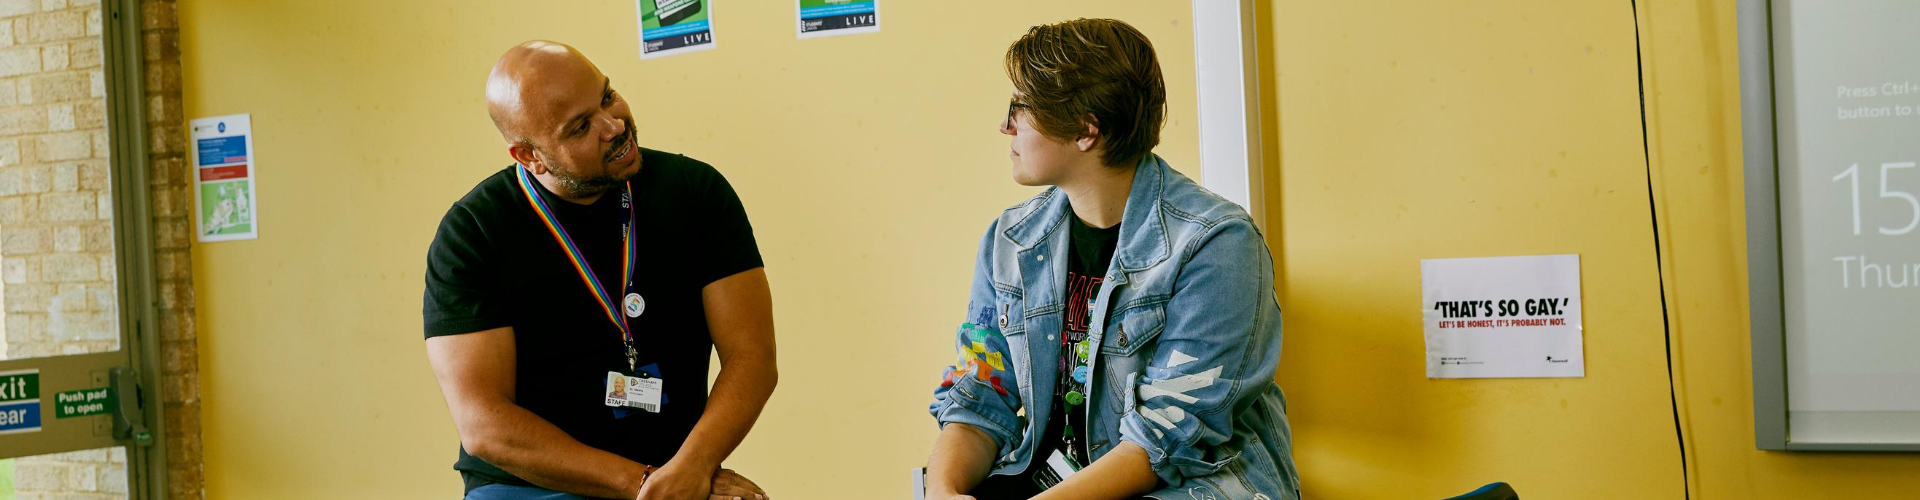 A member of staff talking to a young person